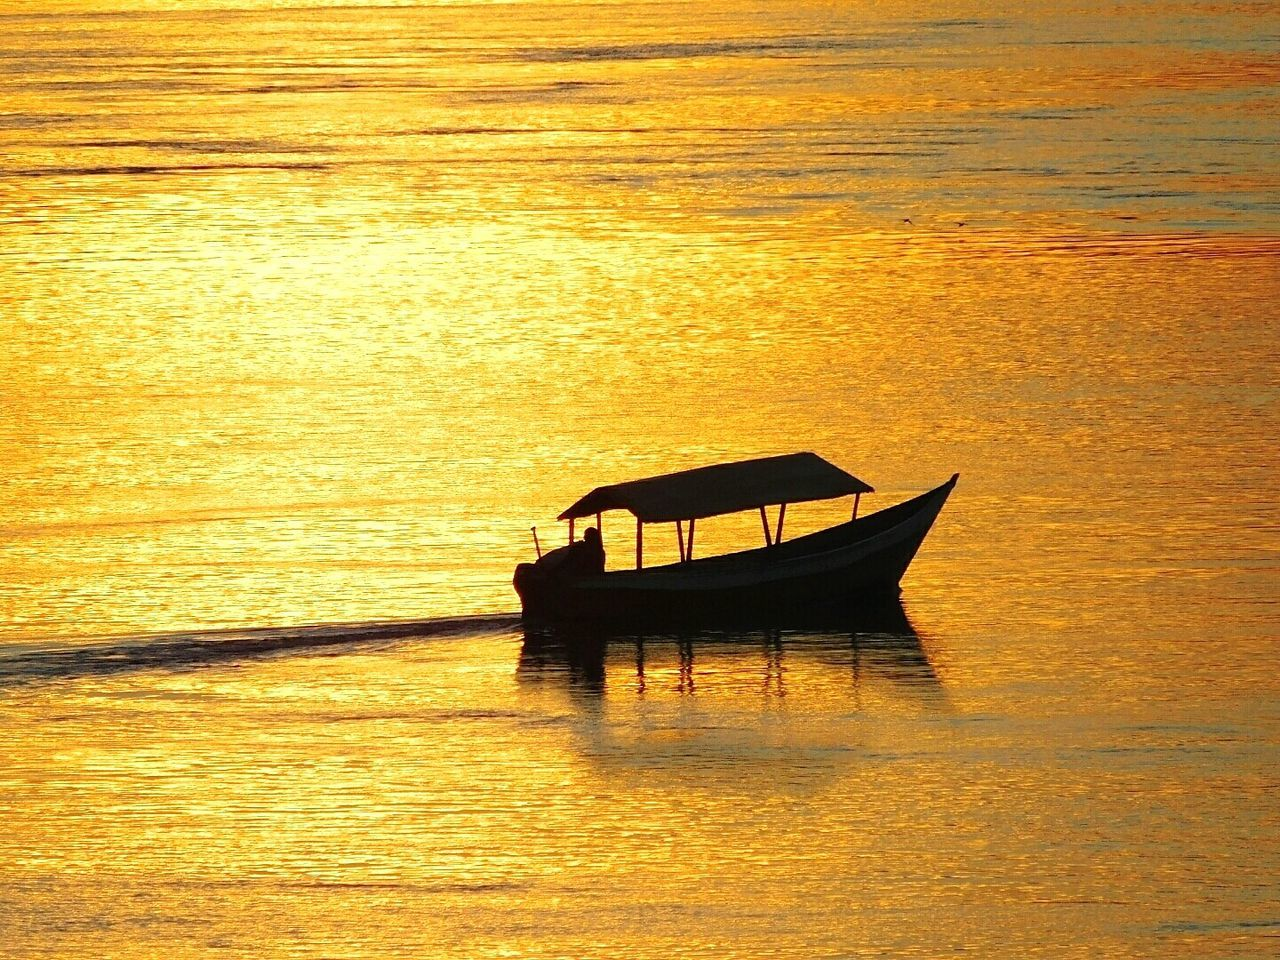 Sunset Sunset Silhouettes Sunset_collection Sunsetlover Enjoying The Sunset Silhouette Onaboat Riverscape River Nile River